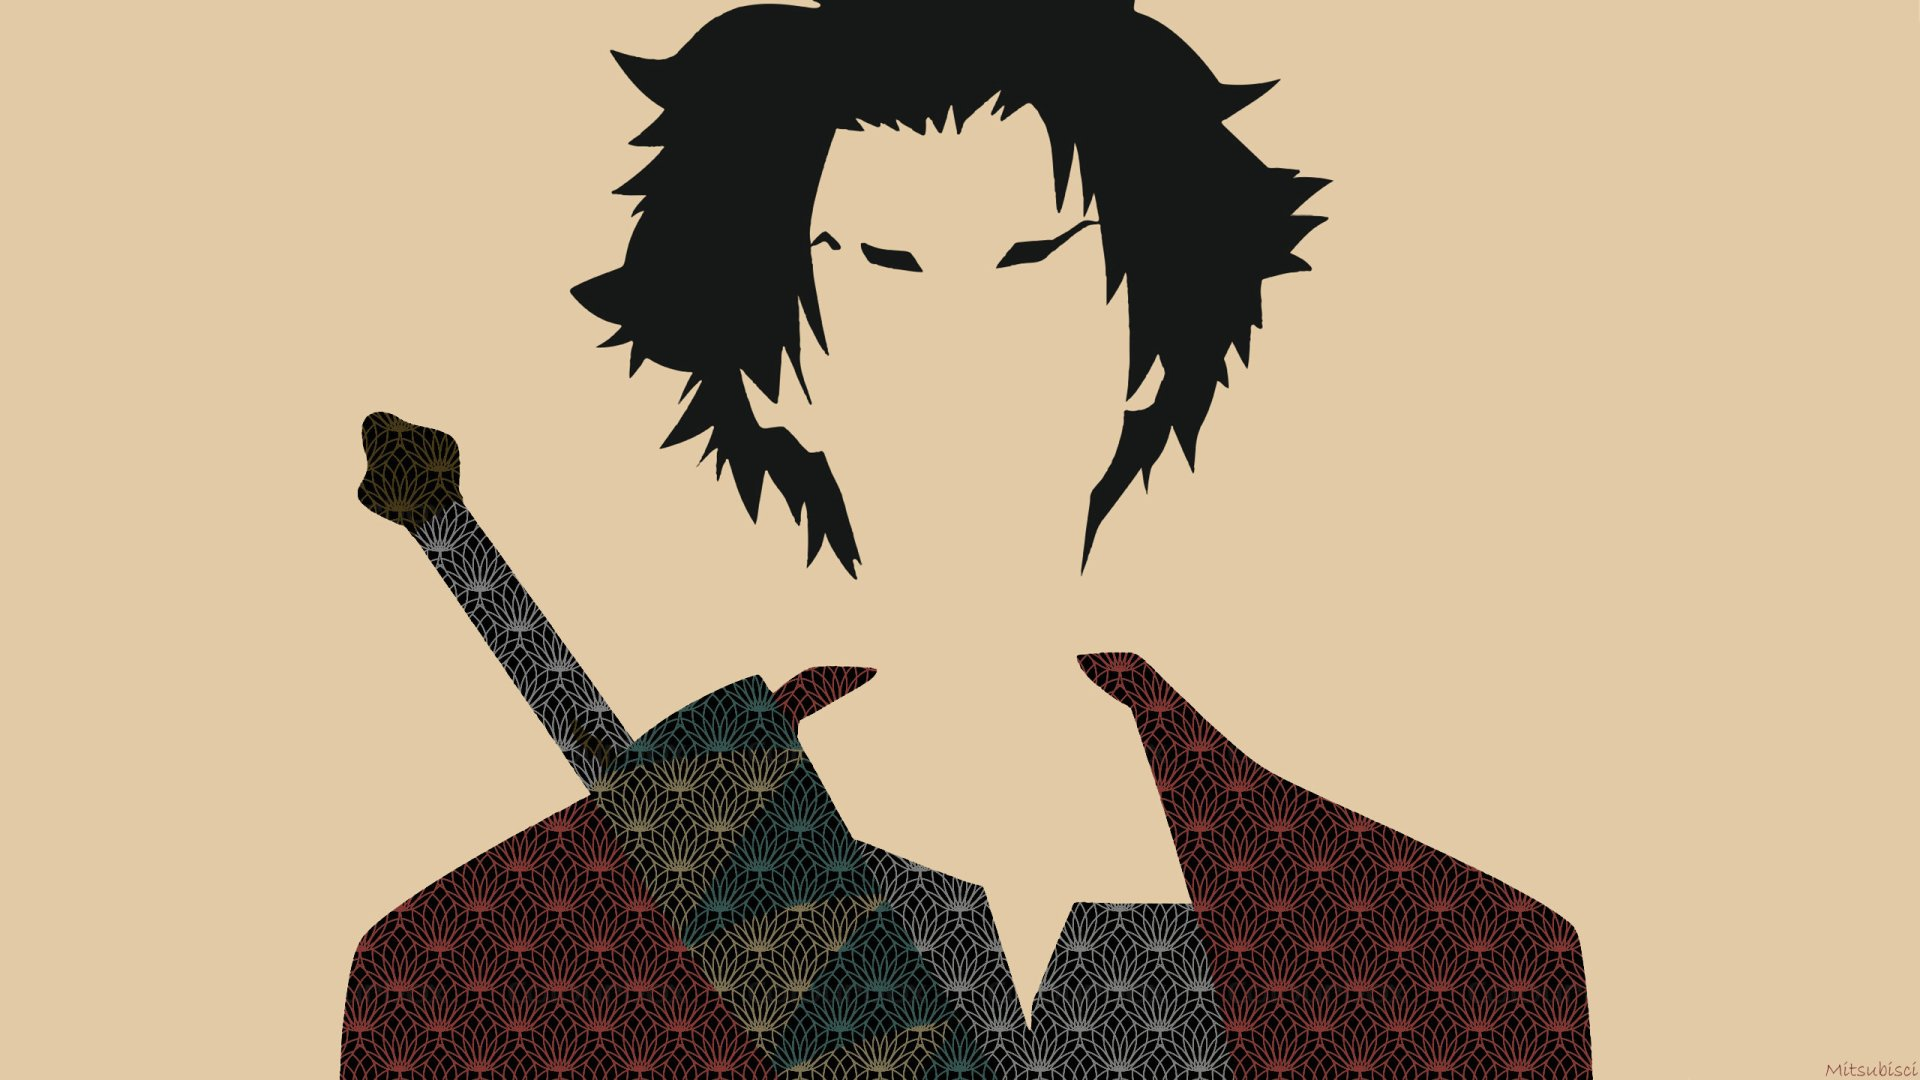 samurai champloo wallpaper widescreen